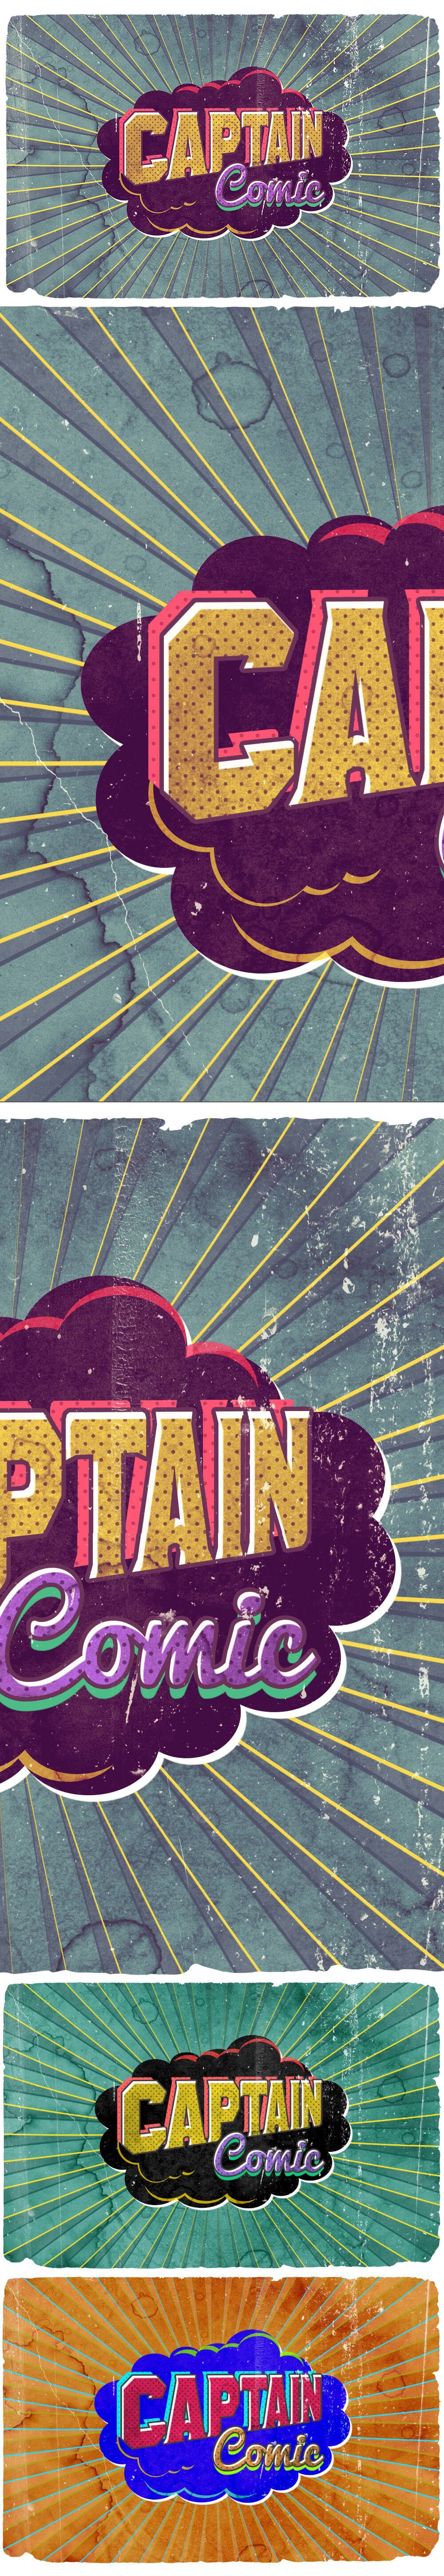 Vintage Poster Comic Text Effect PSD